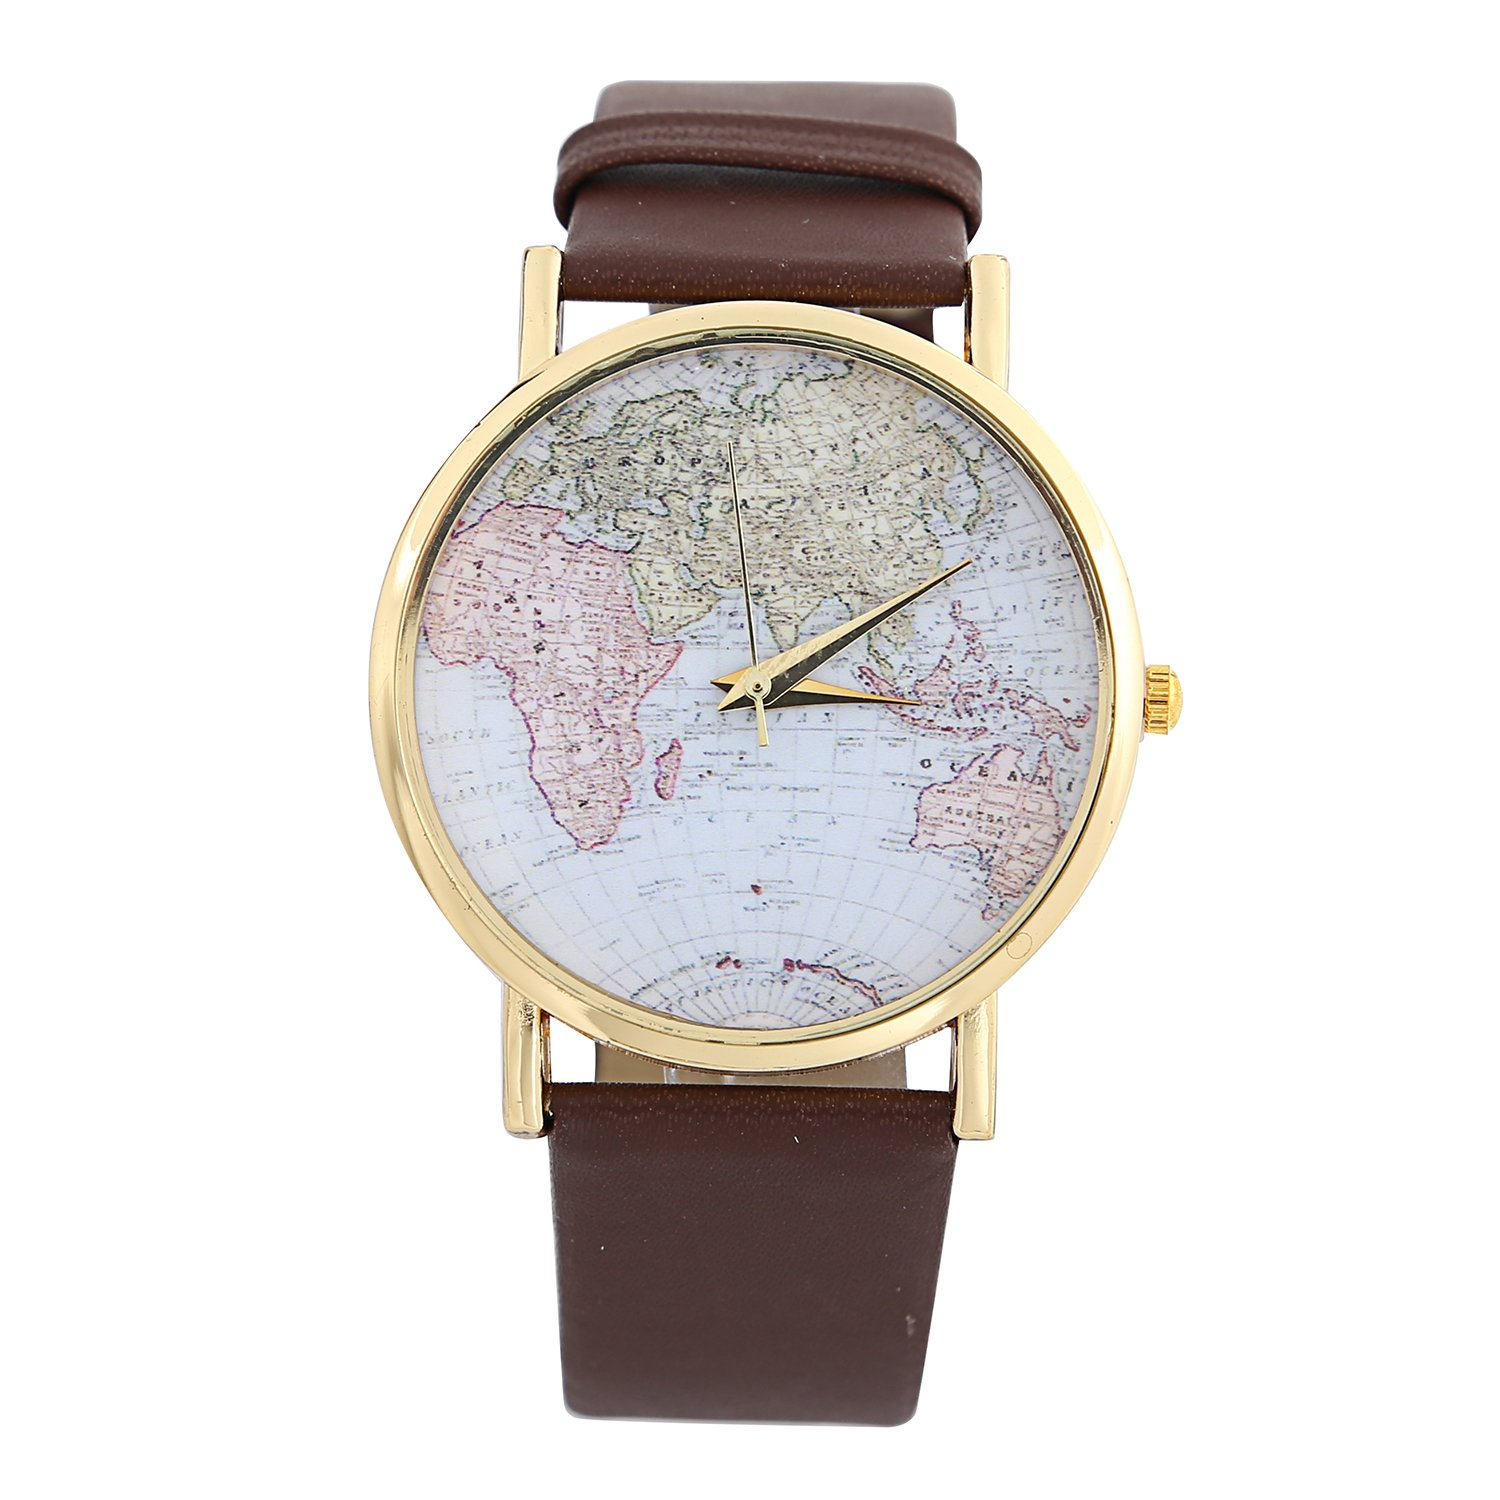 DAYAN Fashion Unisex Men Women Lady Girls World Map Leather Alloy Analog Quartz Wrist Watches Brown fashion vintage big number magic leather strap quartz analog wristwatches watch for women ladies girls black brown blue